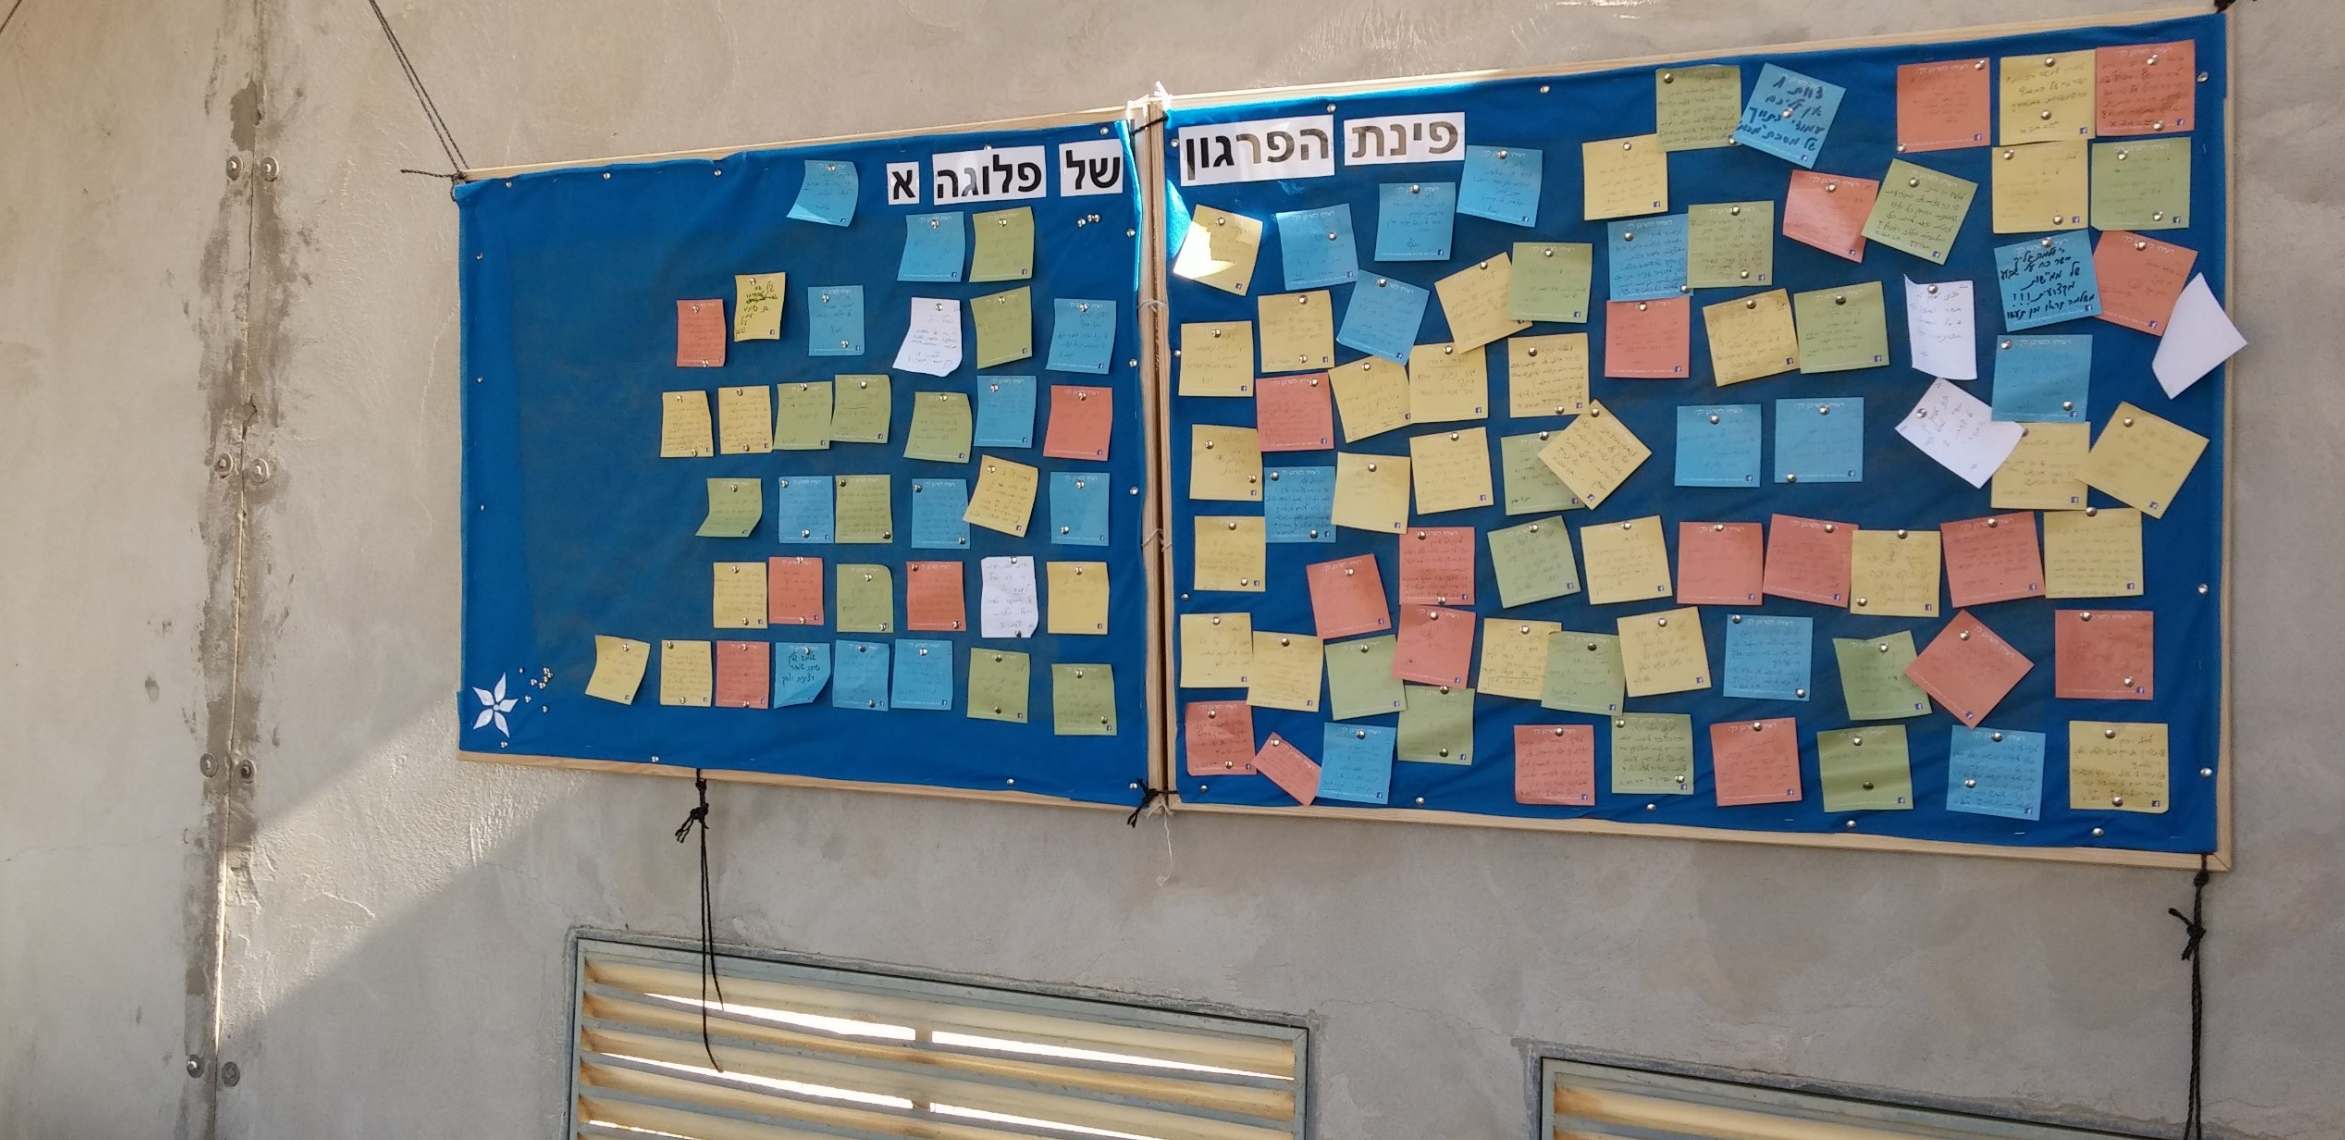 Compliment Board on IDF Army Base